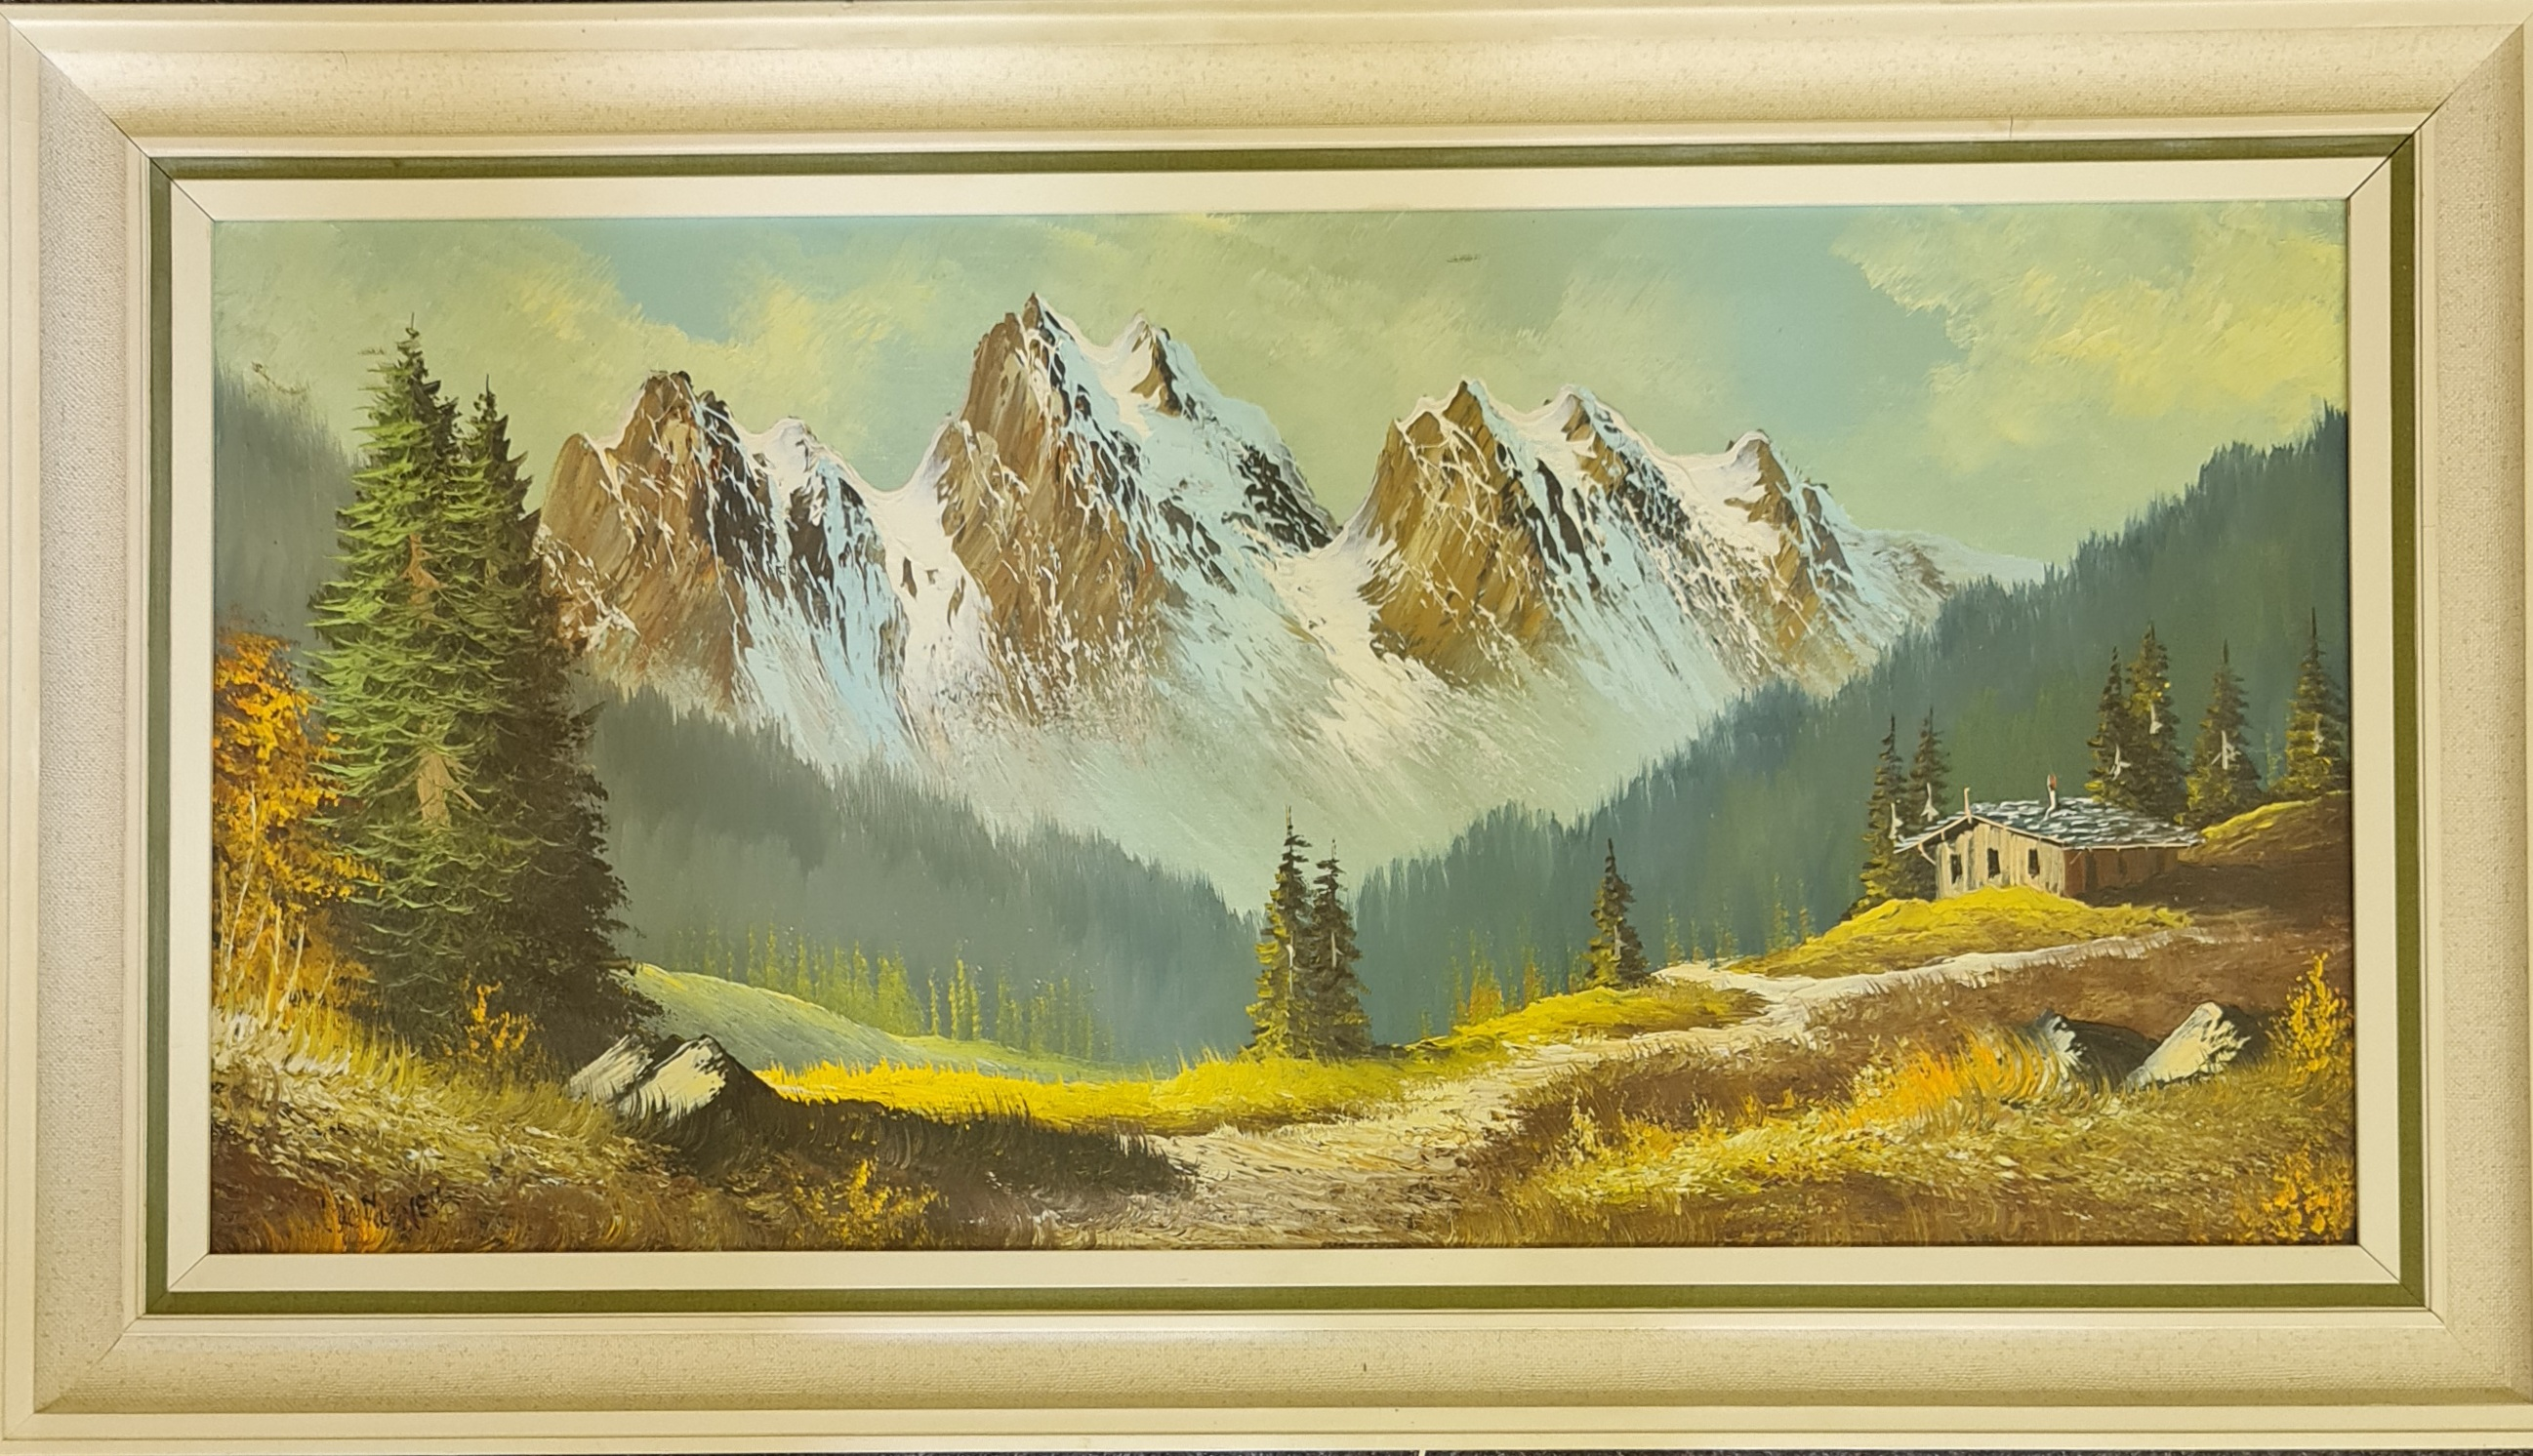 Two framed, signed oil on canvas, one by De Horier, path leading to chalet and snowy mountain - Image 2 of 2